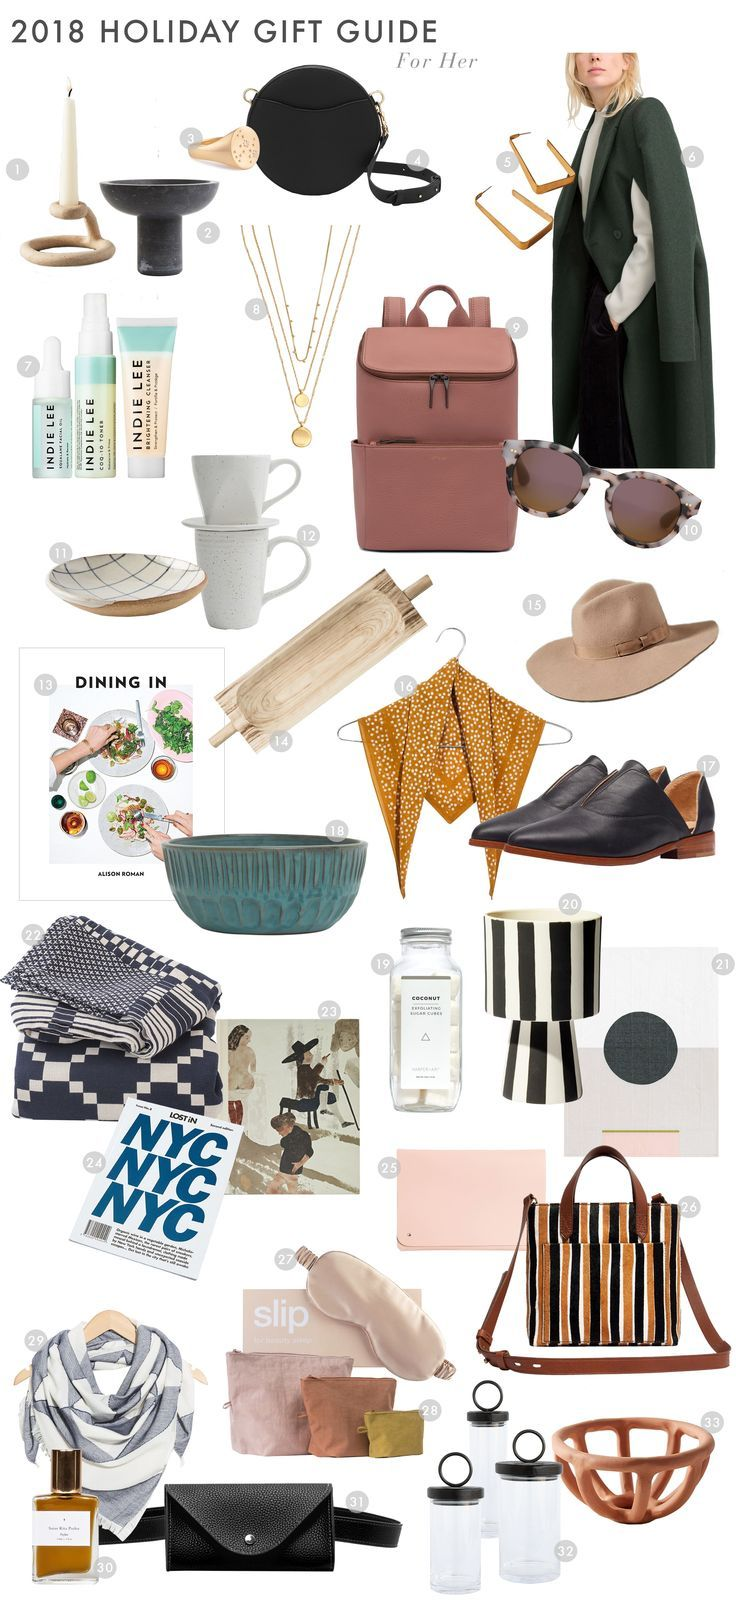 Christmas Gifts 2018 For Her.2018 Holiday Gift Guide 33 Of Our Favorite Gifts For Her